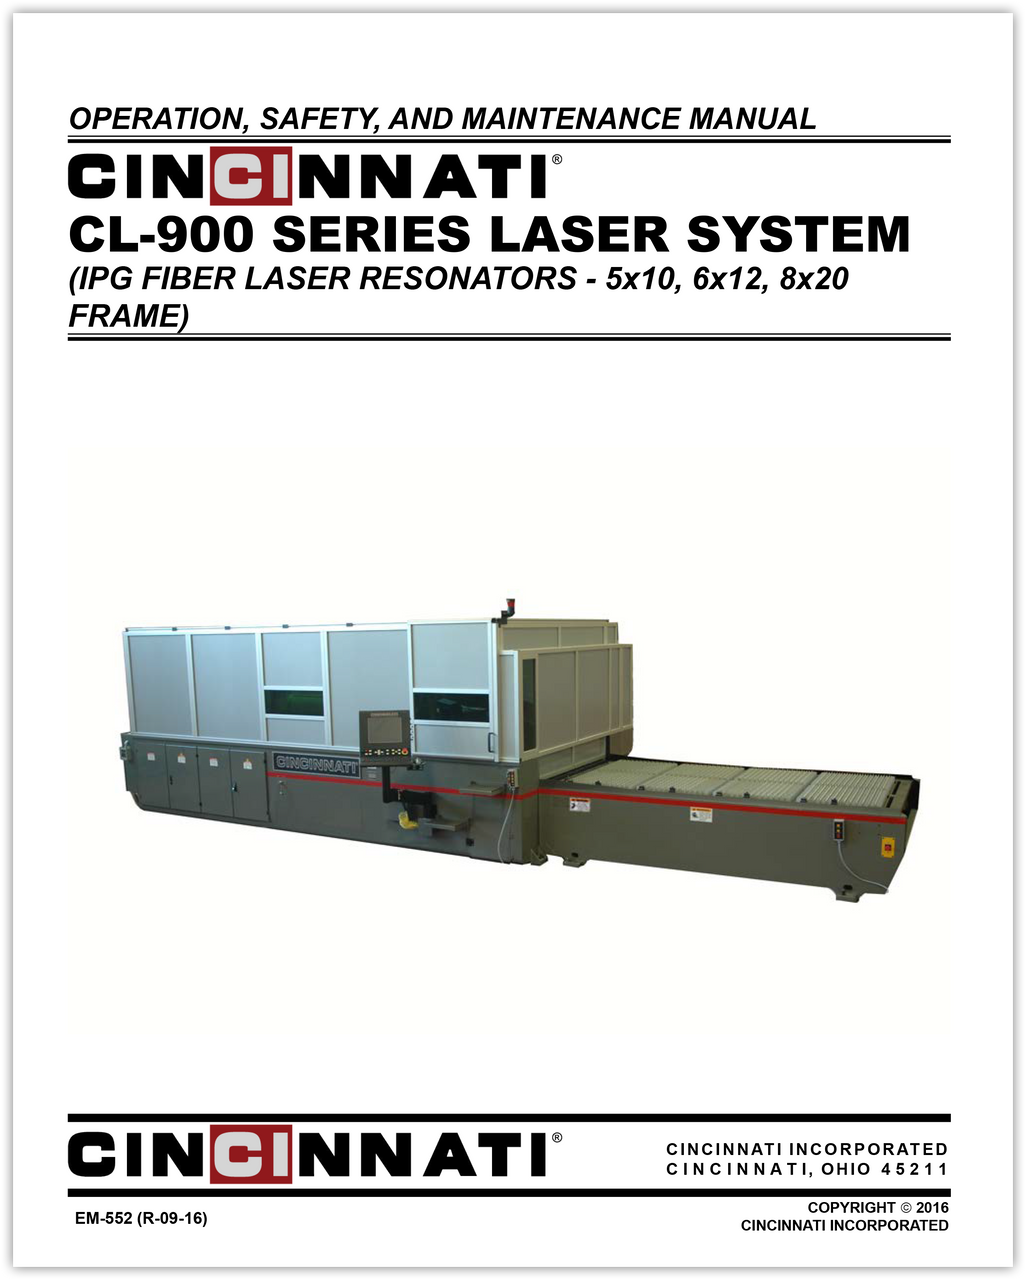 EM-552 (R-09-16) CL-900 Series Laser System Operation Safety and Maintenance Manual